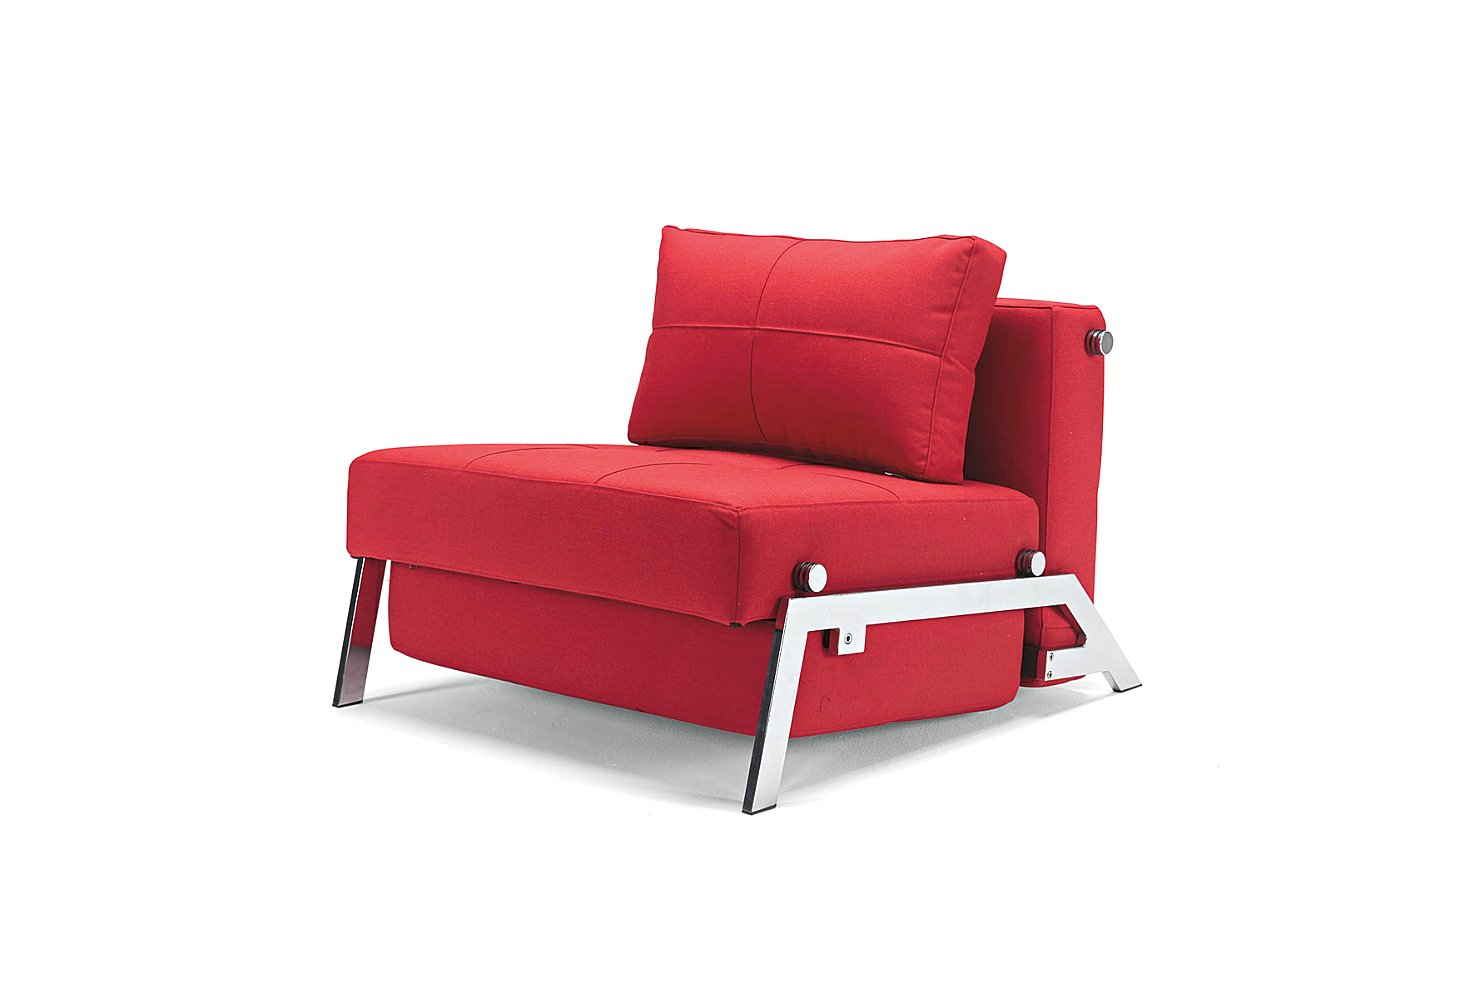 Single Sleeper Chairs Showcasing A Cozy And Enjoyable In Comfortable Sofas And Chairs (View 13 of 15)